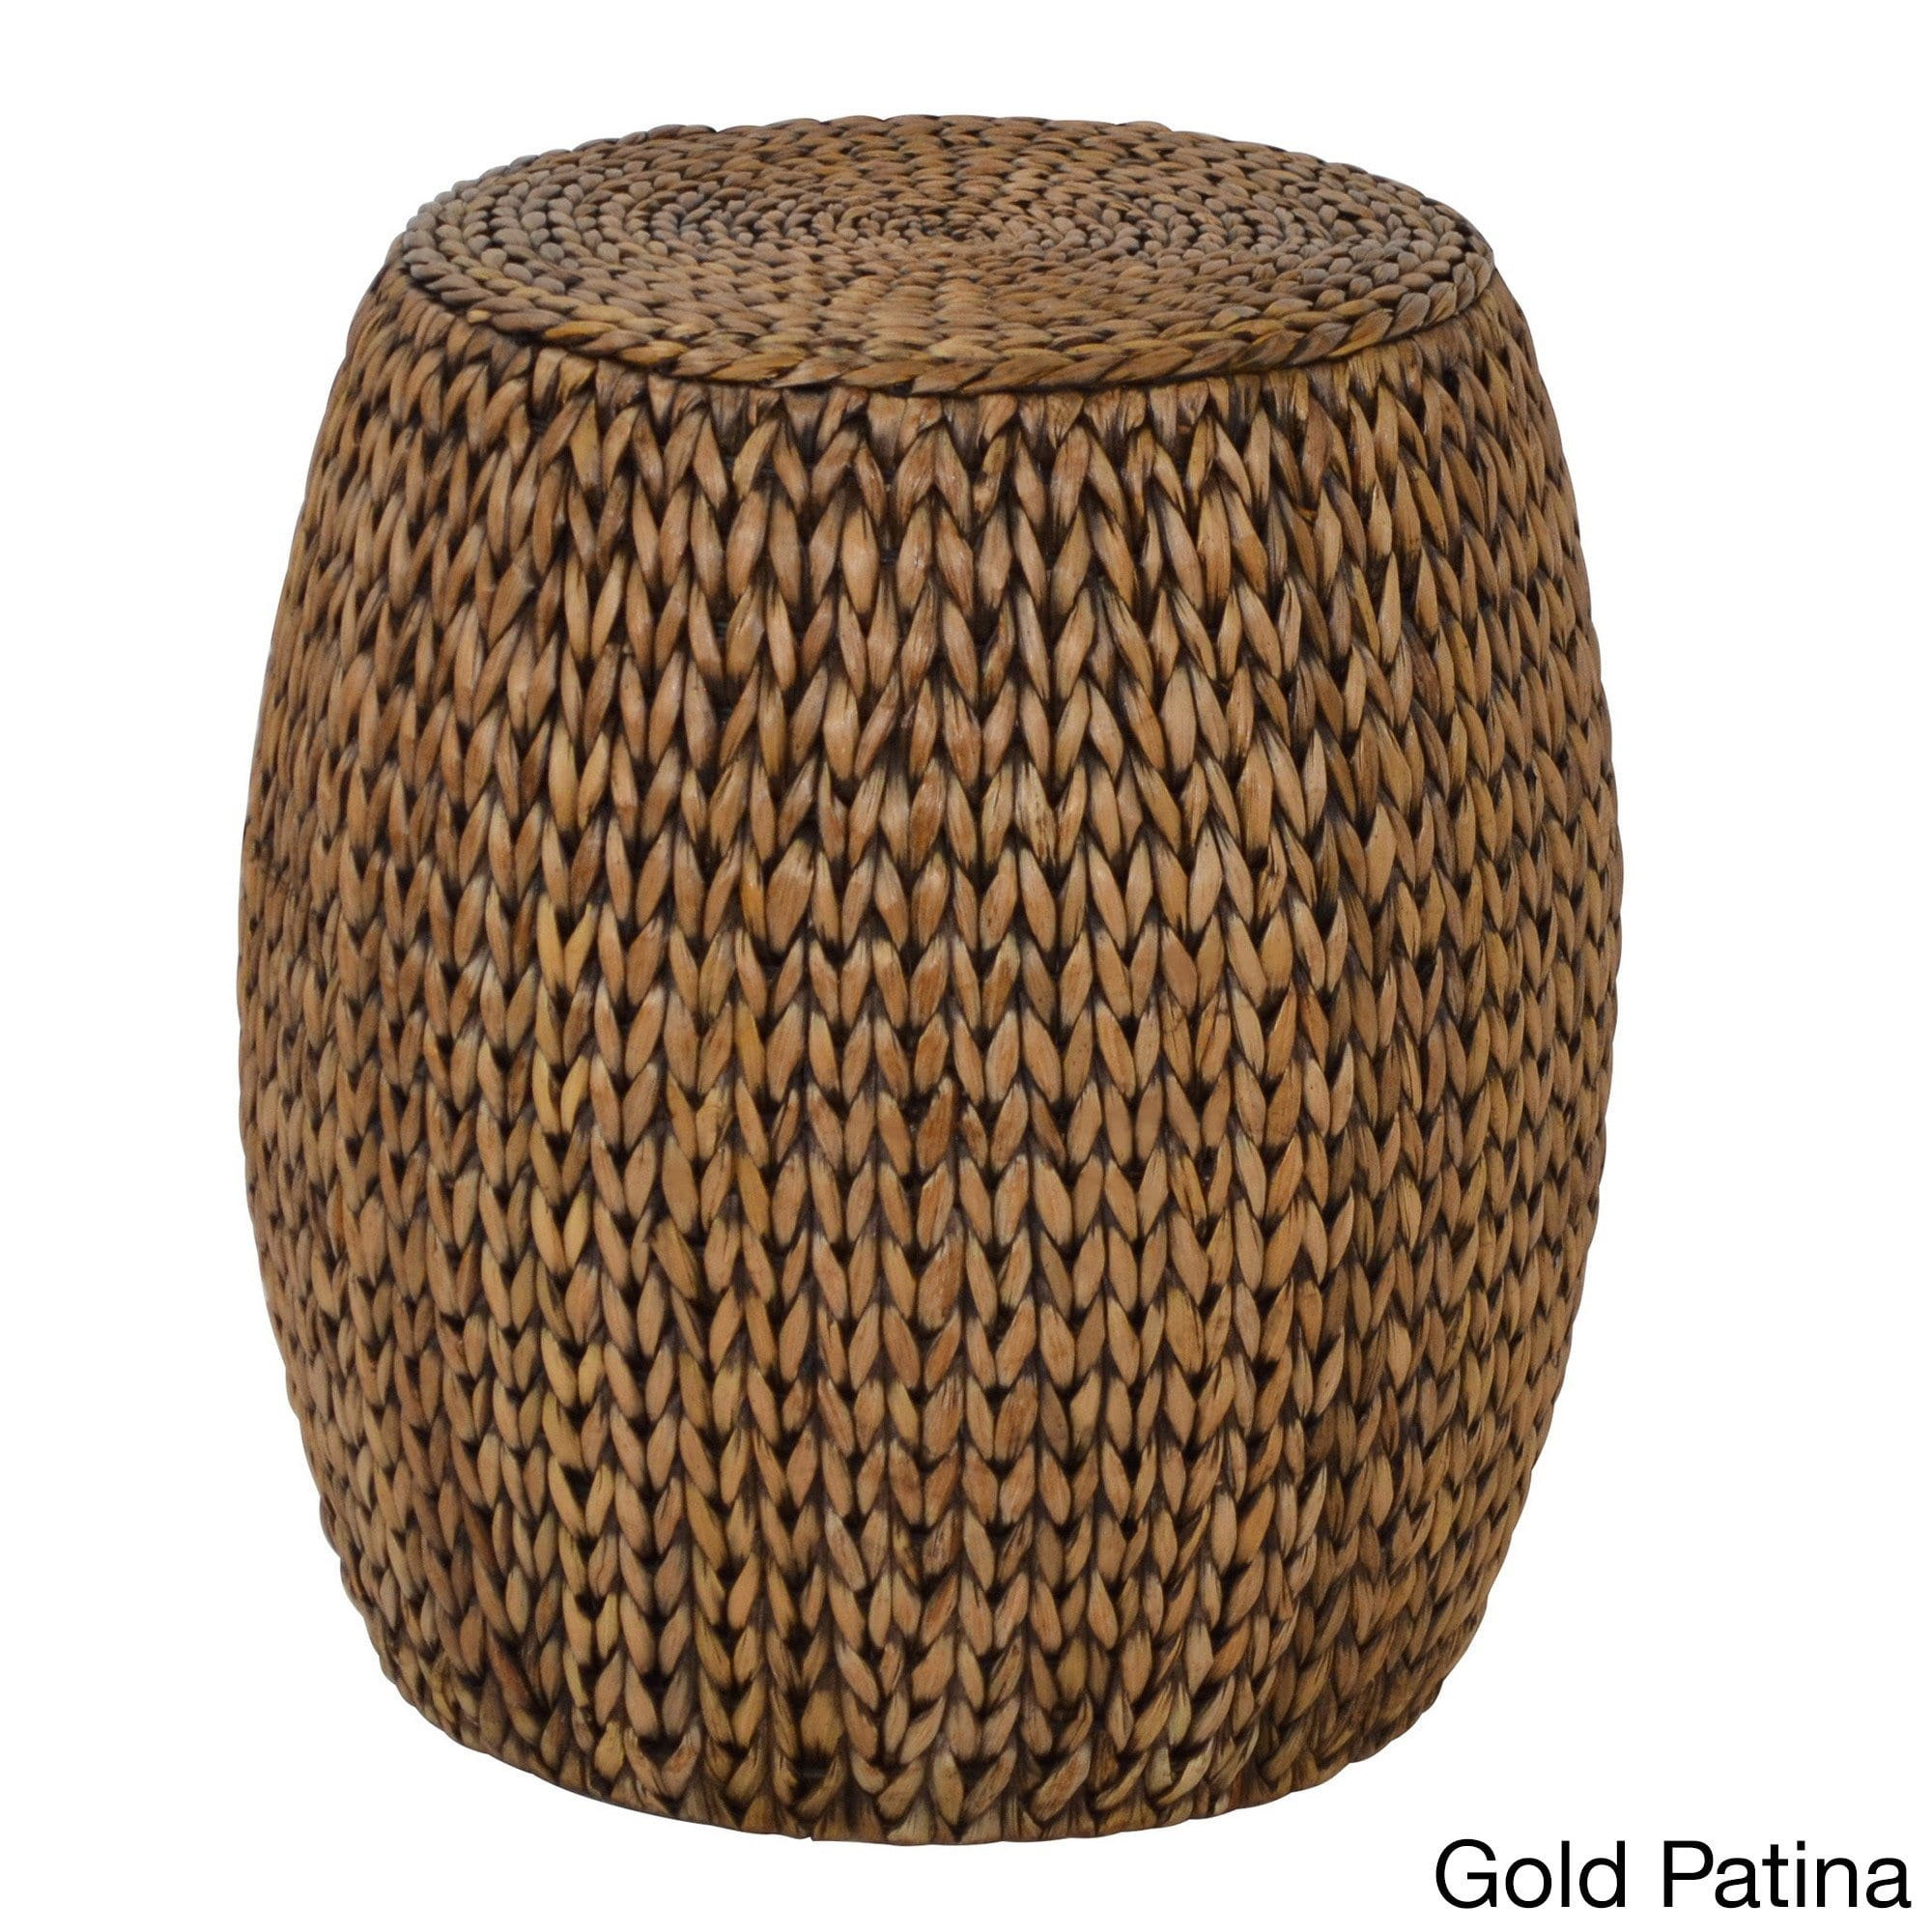 gallerie decor tall drum accent table free shipping today gold small round pedestal end walnut dining high console legion furniture cover ideas ashley set outdoor cushions